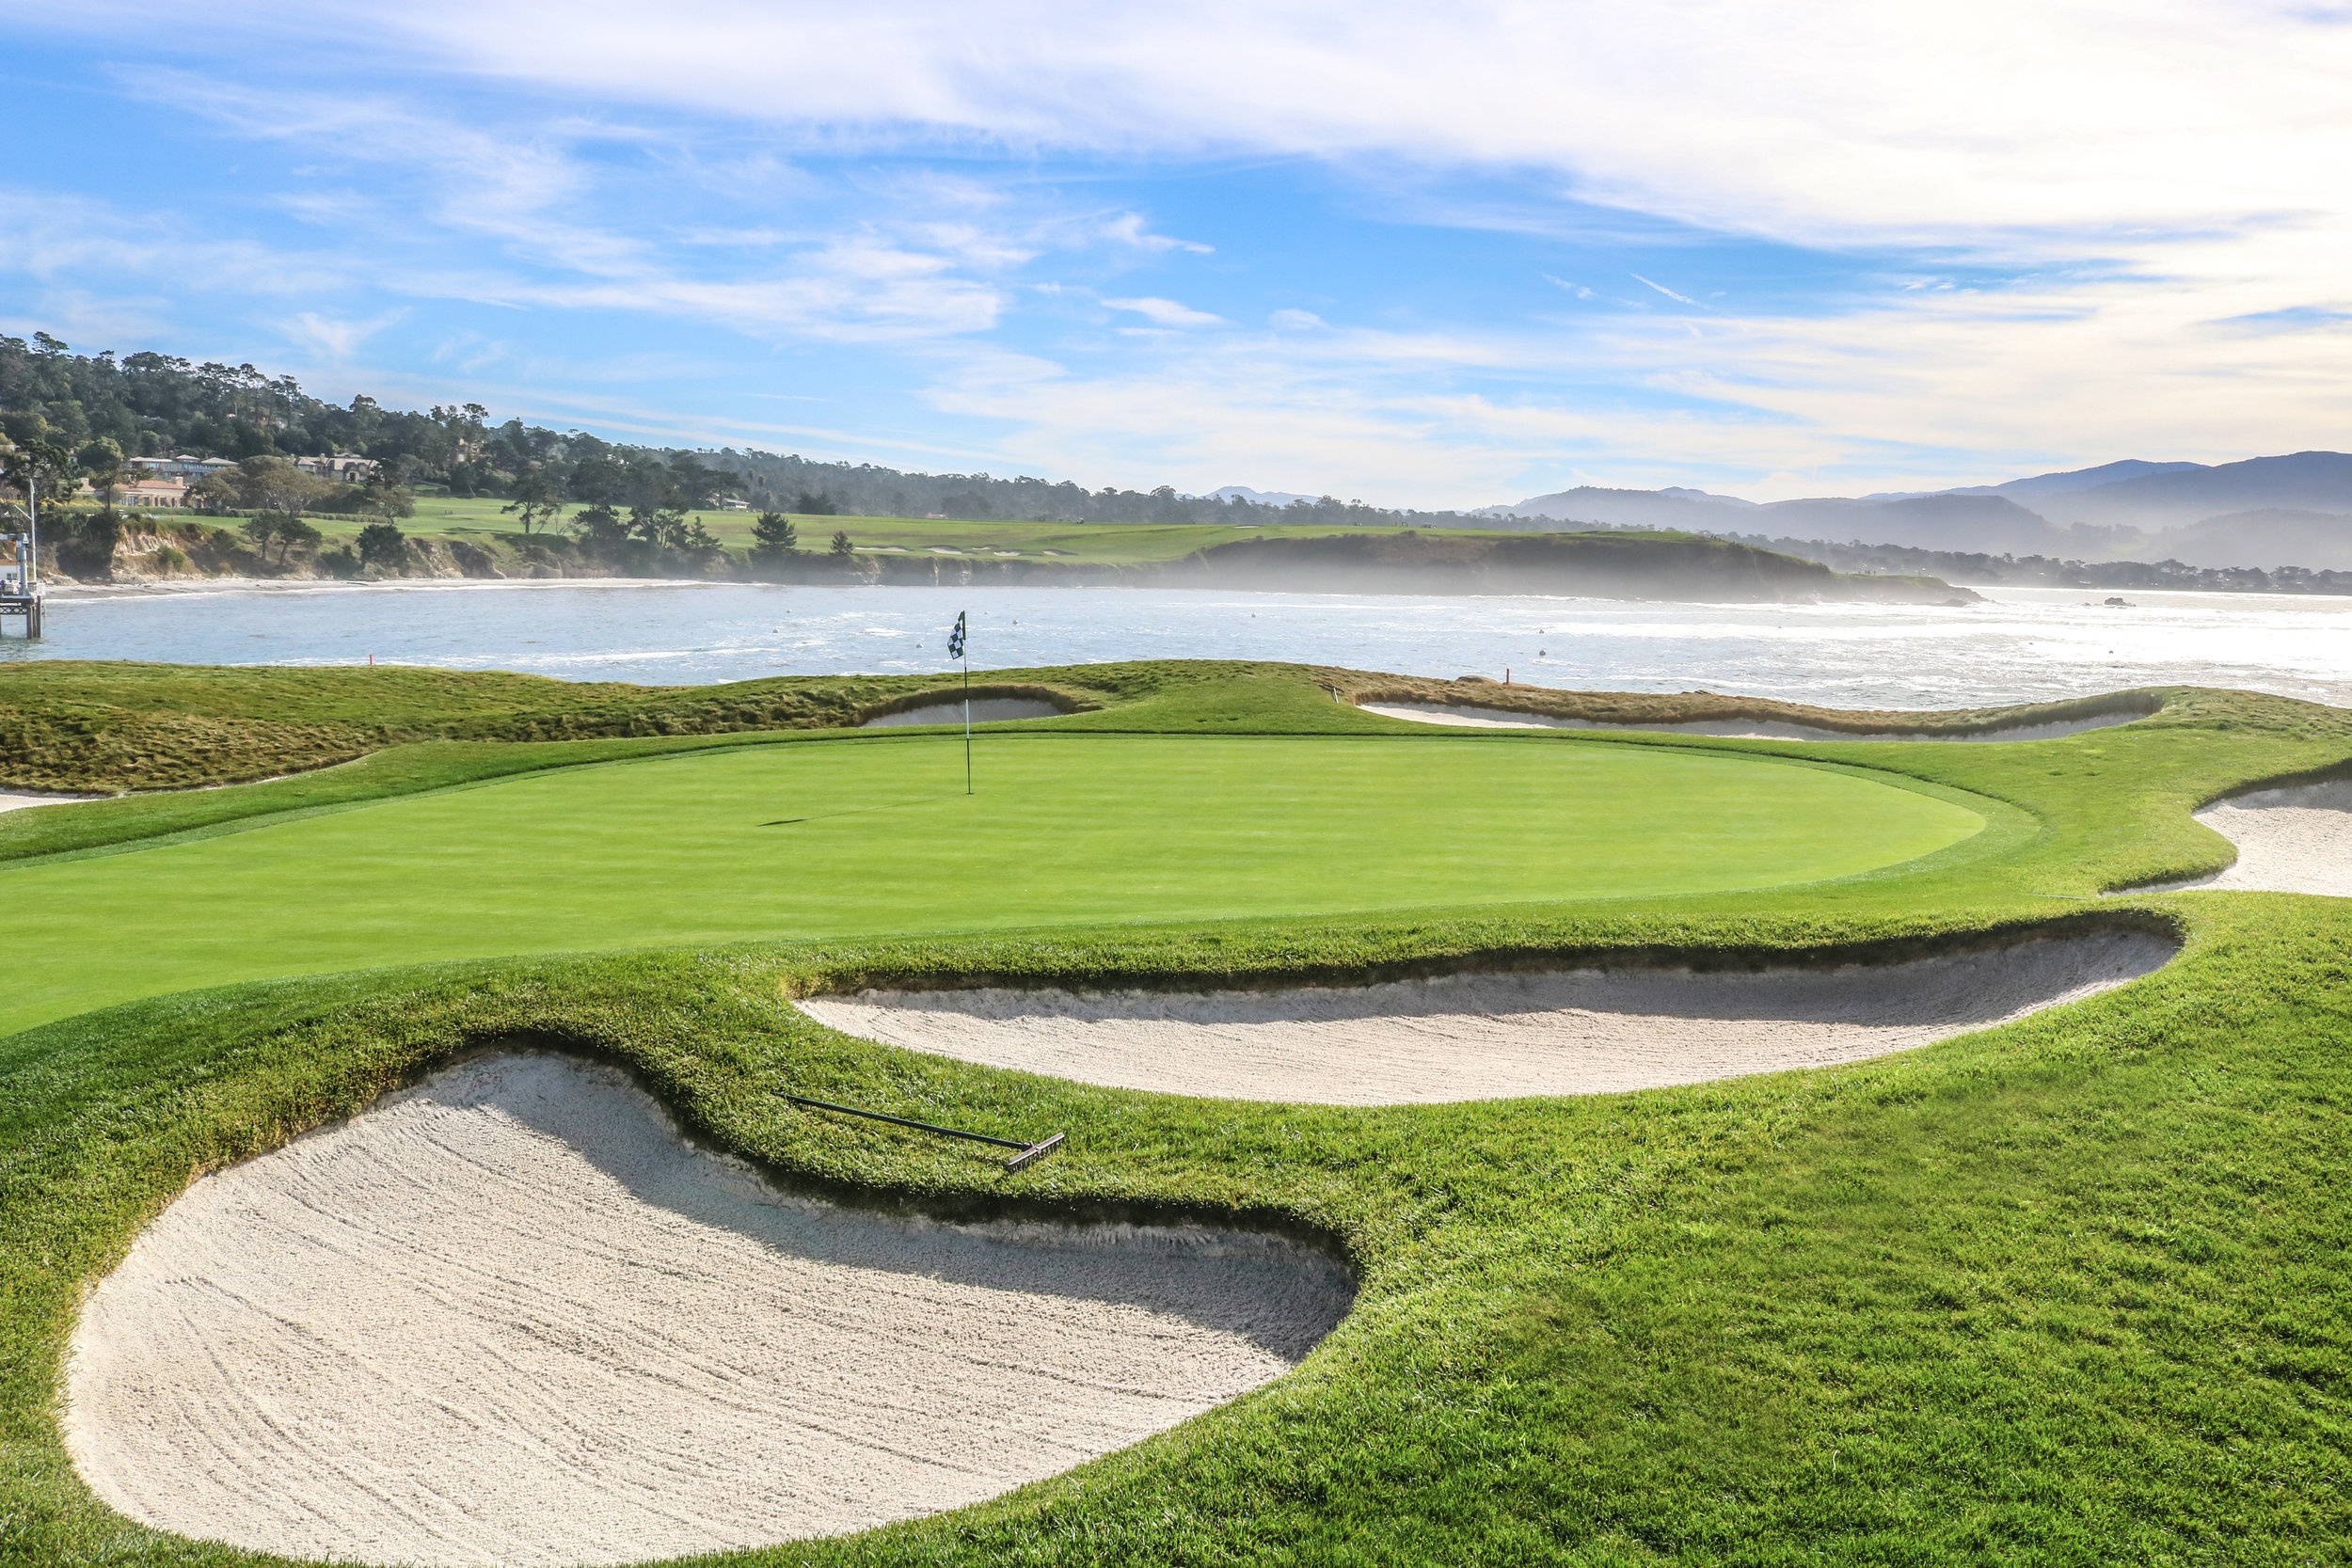 GOLF-PBGL_Holes_17-Pebble Beach Company.jpg